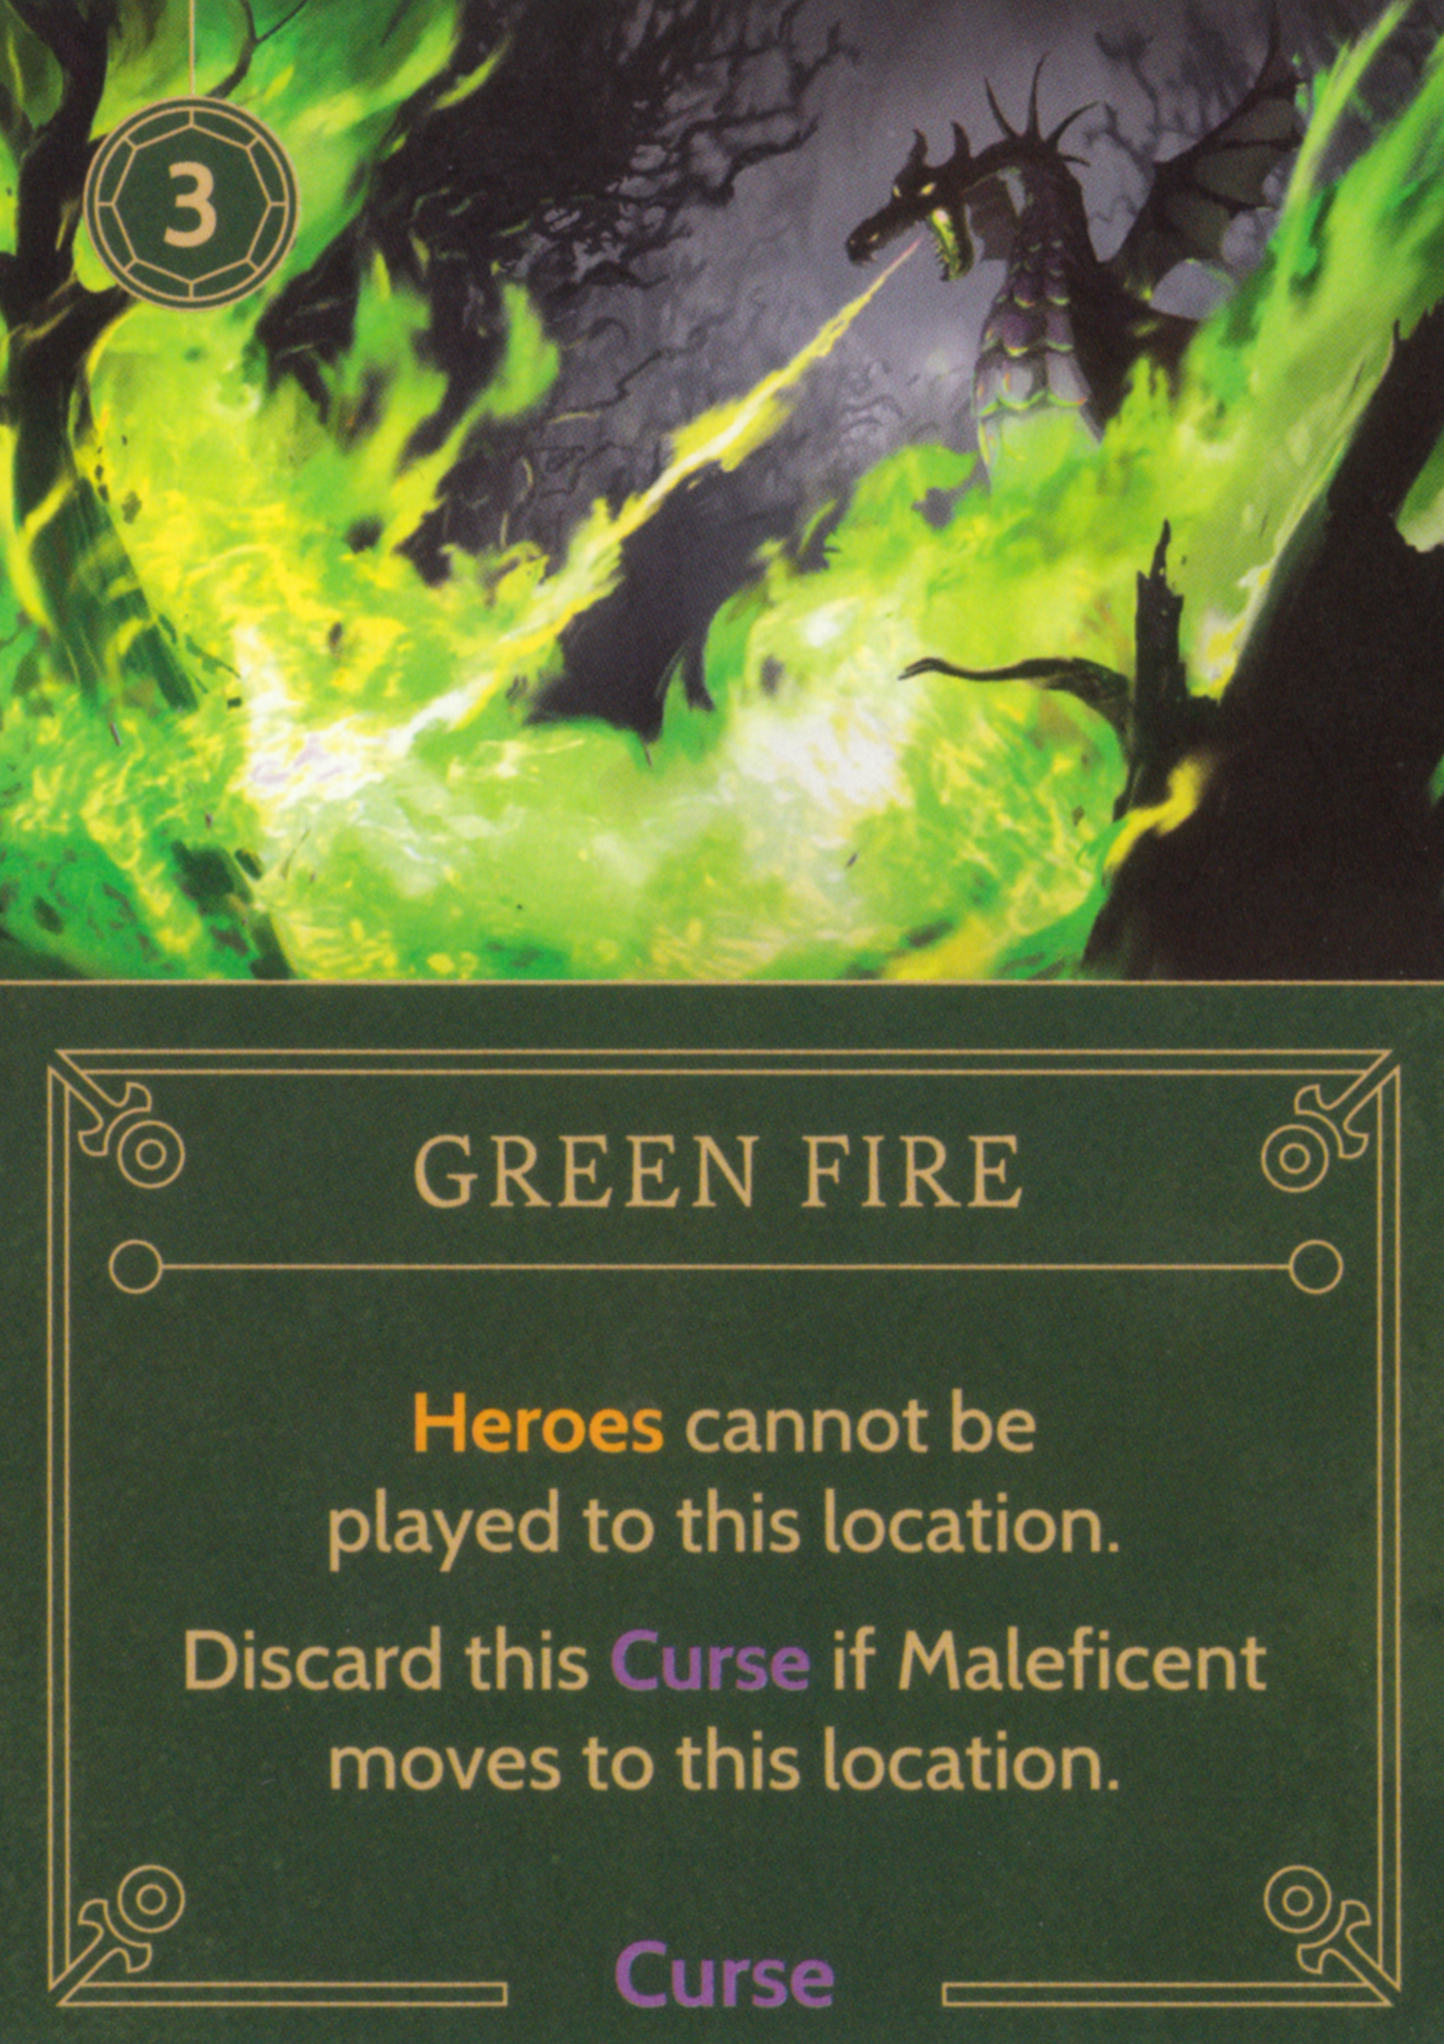 Green Fire Disney Villainous Wiki Fandom Powered By Wikia